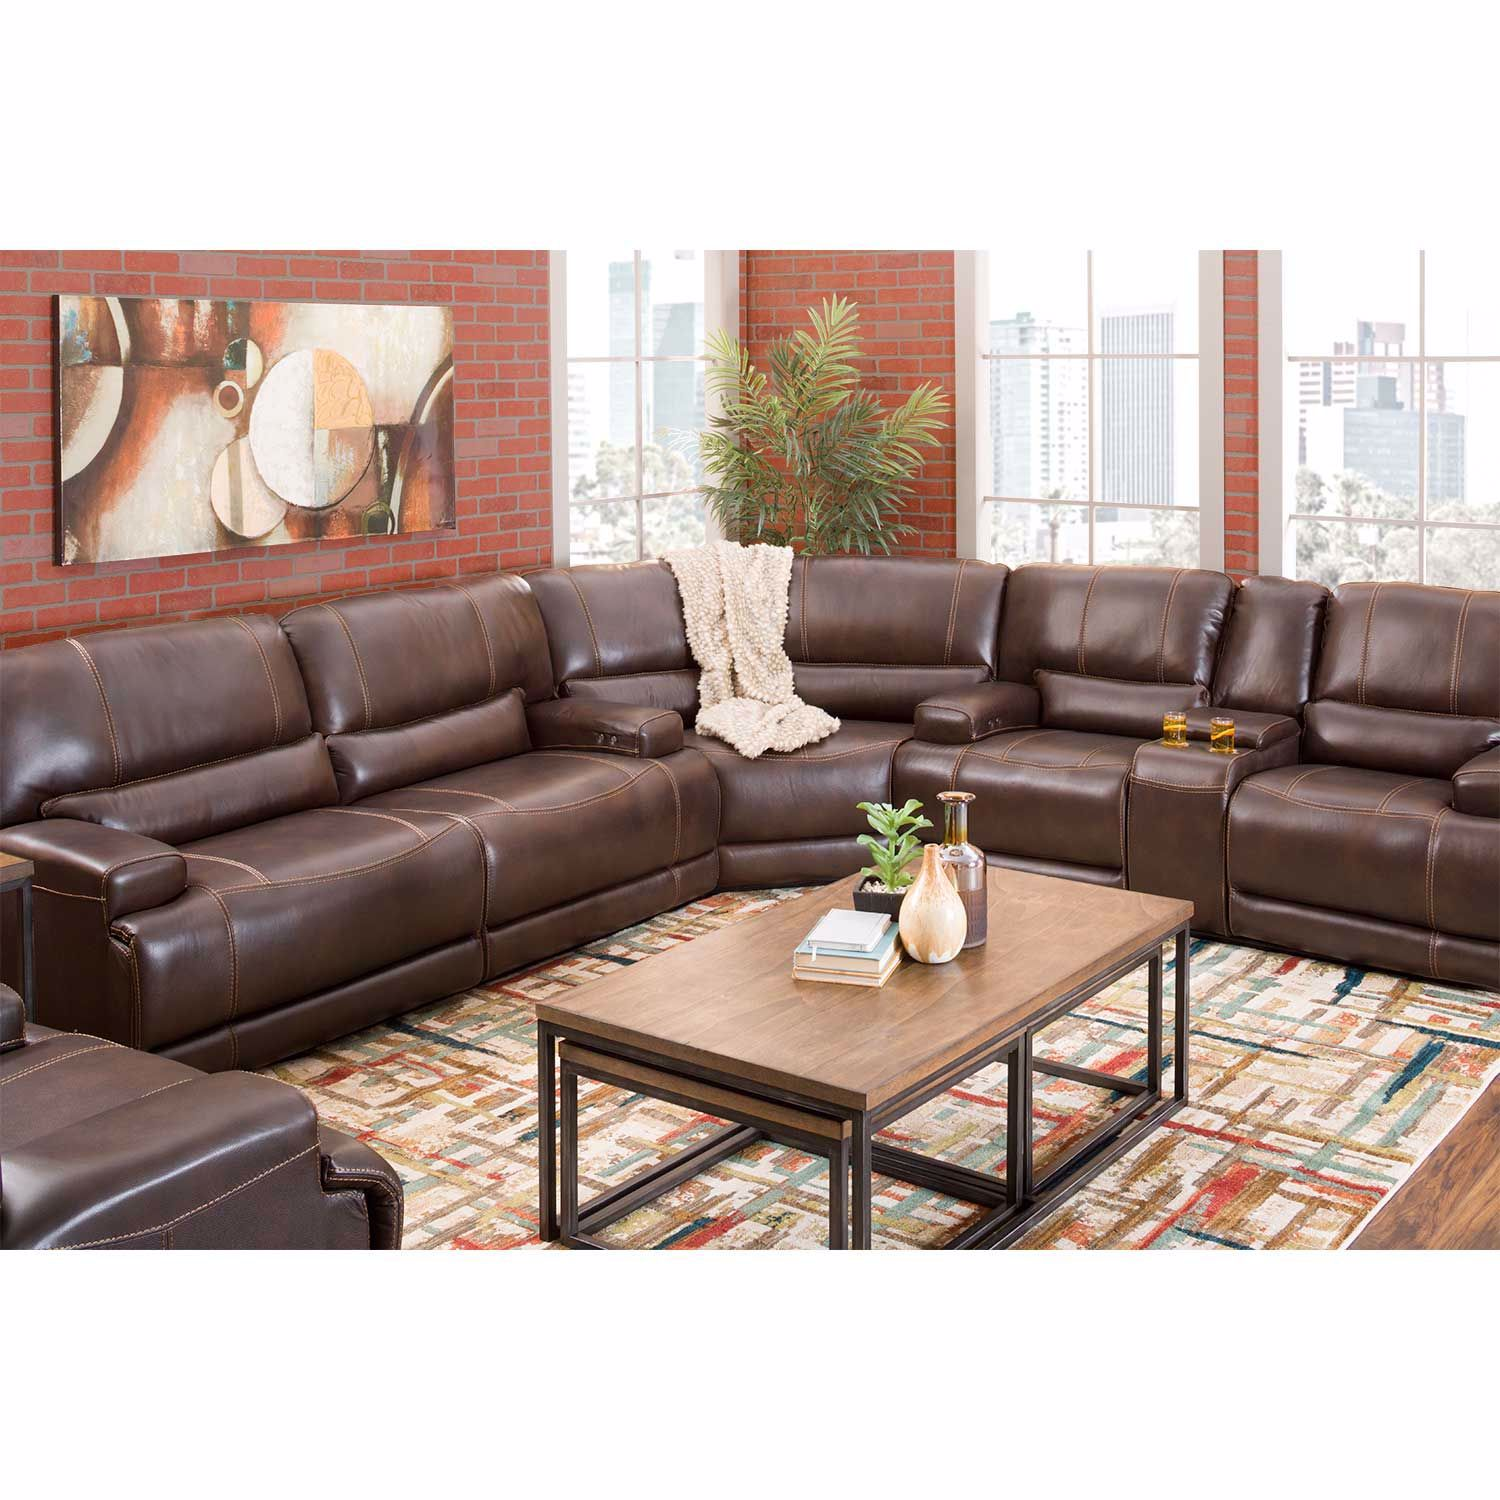 Picture of Jax Brown 3 PC Leather Power Recline Sectional